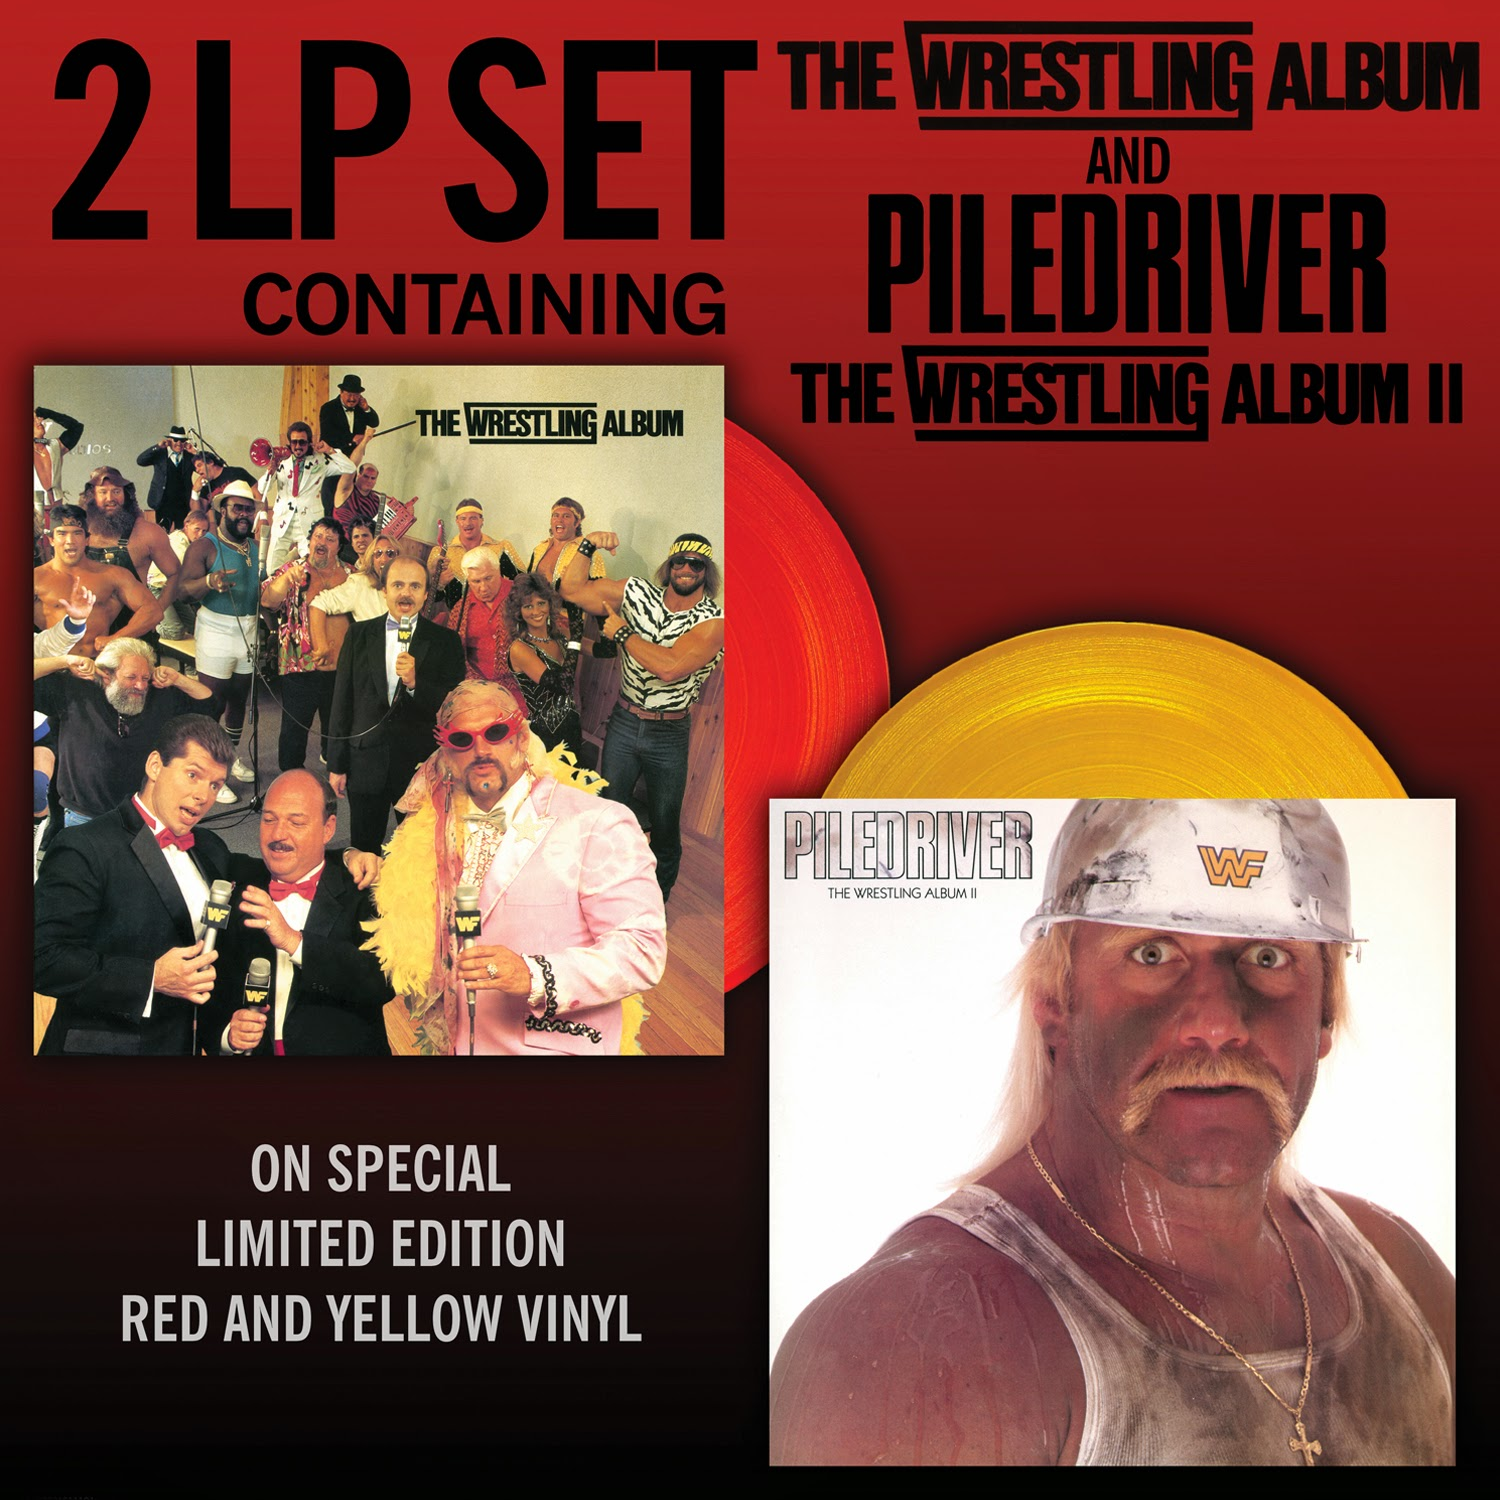 Record Store Day 2015 Exclusive WWE The Wrestling Album & Piledriver: The Wrestling Album 2 Double LP Colored Vinyl Records